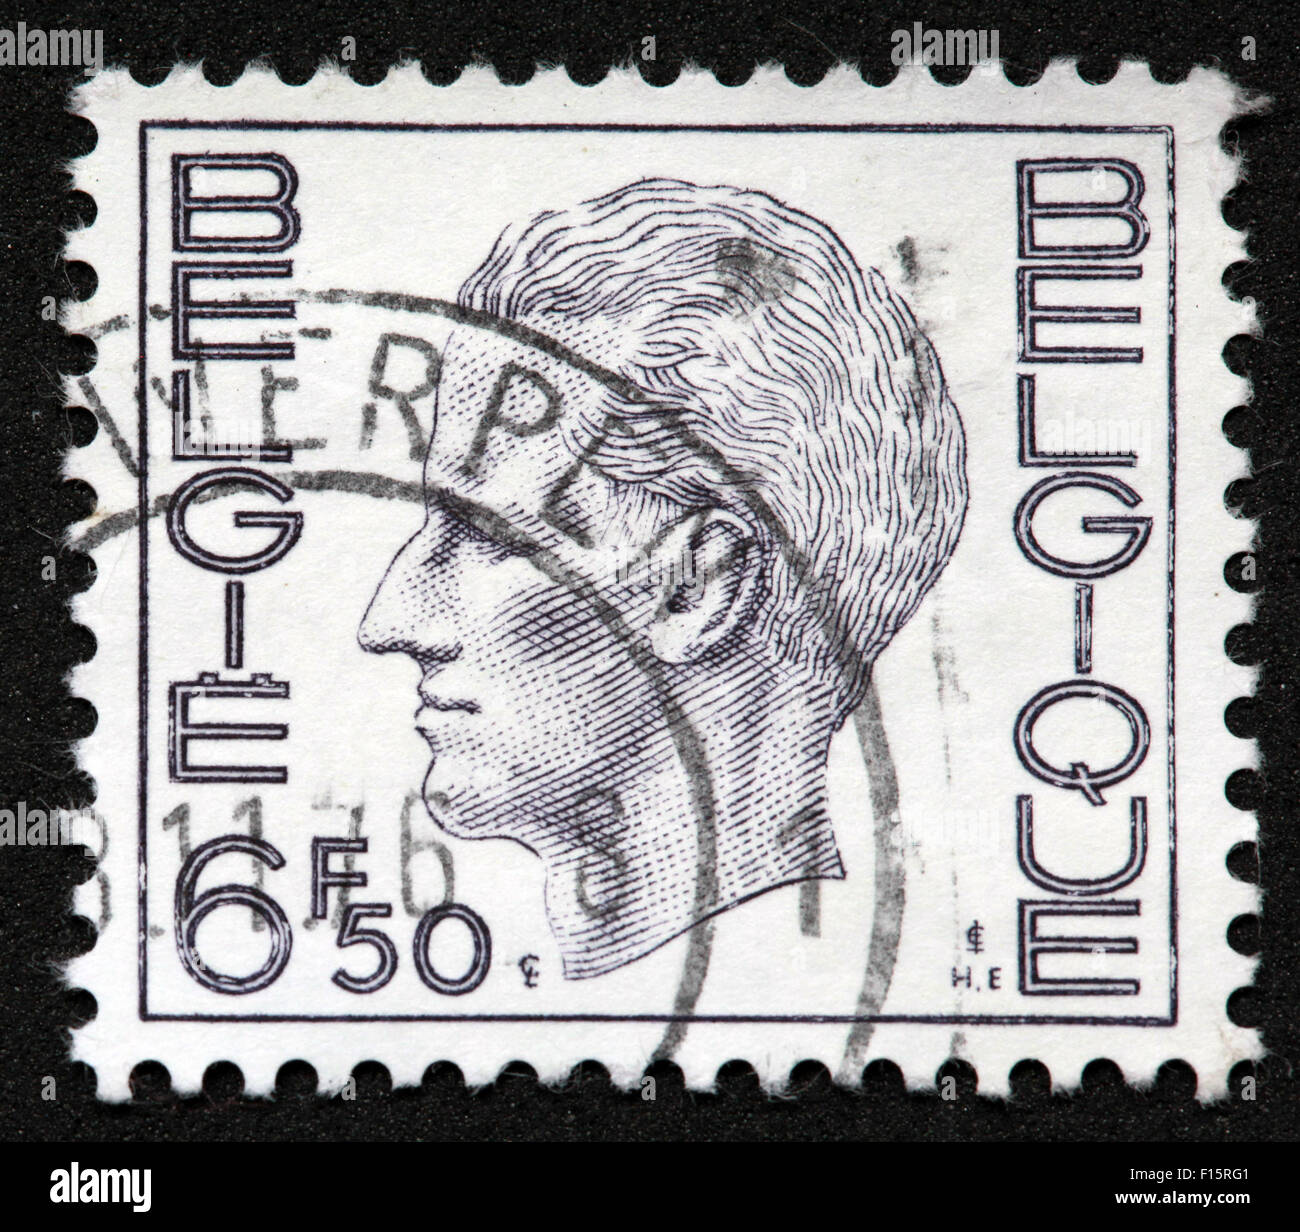 International Post,star,Used and Postmarked,Used,and,postmarked,perforated,stamp,Used,and,postmarked,Stamp,post,posting,mail,hobby,perforation,mark,postage,stamp,print,stamp,cancelled,stamp,payment,correspondence,postman,collection,collector,antwerp,portrait man men stamp white,Gotonysmith,post,posting,mail,hobby,perforation,mark,postage,stamp,print,stamp,cancelled,canceled,stamp,payment,correspondence,postman,collection,collector,philately,philatelist,letter,price,history,retro,Australian,Vintage,delivery,date,relationship,communication,Oz,Australia,DownUnder,classic rare unique Austrailian financial,investment,invest,value,British,empire,nation,canceled,printed on black background,close-up,closeup,close,up,sent,send,philately,mailing,shipping,postoffice,office,isolated,circa,special,colour,color,postmarked,marked,airmail,aged,antique,retro,cutting,historic,old,stamps,collection,stamp collection,album,Timbre,Sello,Stempel,Selo,Buy Pictures of,Buy Images Of,Down Under,Black background